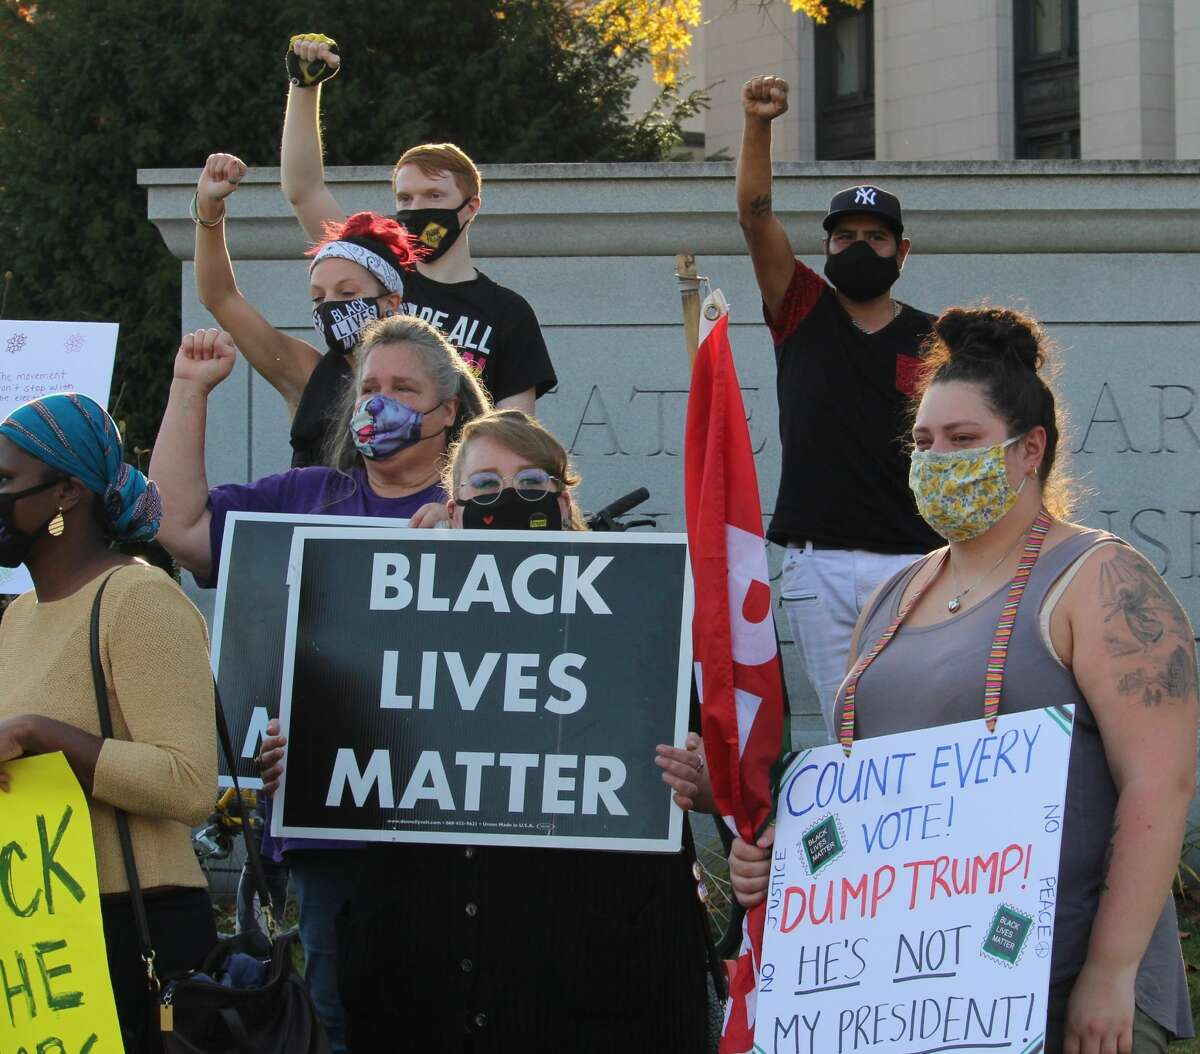 At the state Capitol on Saturday afternoon, pro-Biden and progressive groups showed up at first to calls for counting of all votes, then to celebrate the Biden win, then to stand off against pro-Trump groups. The pro-Trump protesters gathered on the south lawn of the Capitol and held a pickup truck parade as well. The groups clashed but there were no incidents of violence. One anti-Trump protester was taken into custody by police for approaching the other side and taunting. Unclear whether she was arrested. A few Trump supporters tried to drown out the progressives' rally, then left. Both groups had 200 to 300 people there, about equal in size.